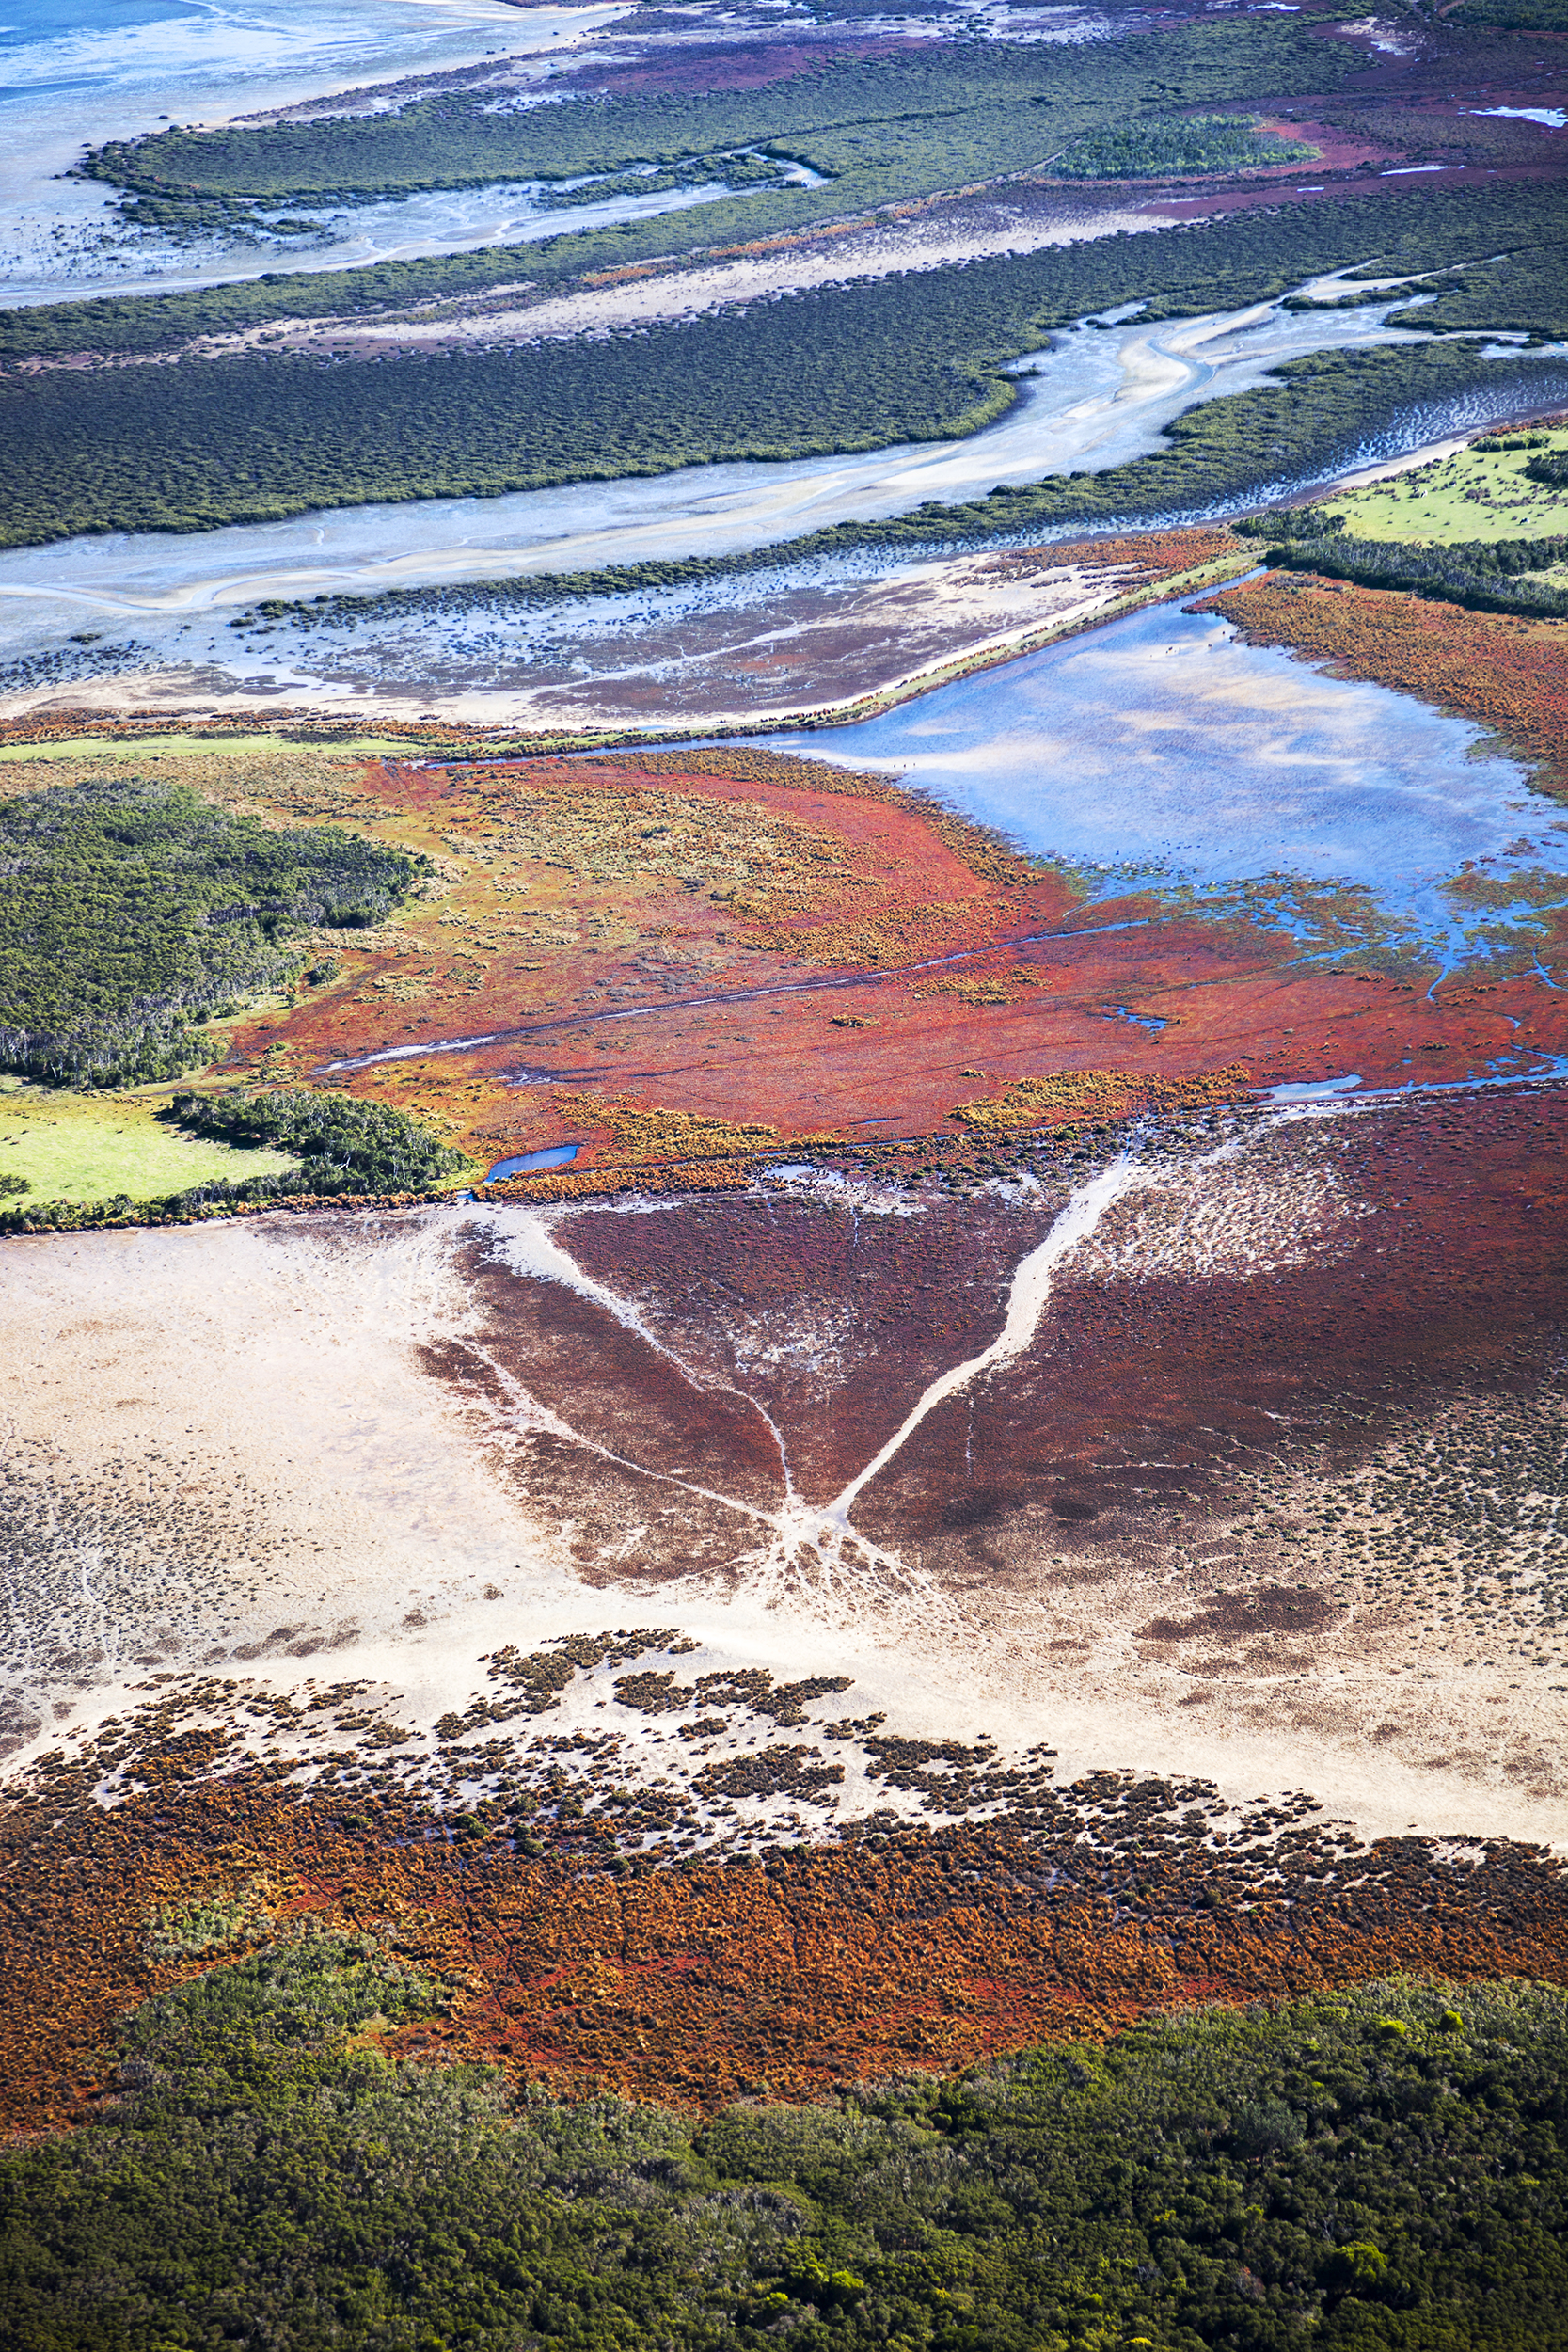 Terra Firma (2013)     Terra Firma  is an aerial photography series uncovering the harsh landscape of South East Victoria, Australia.